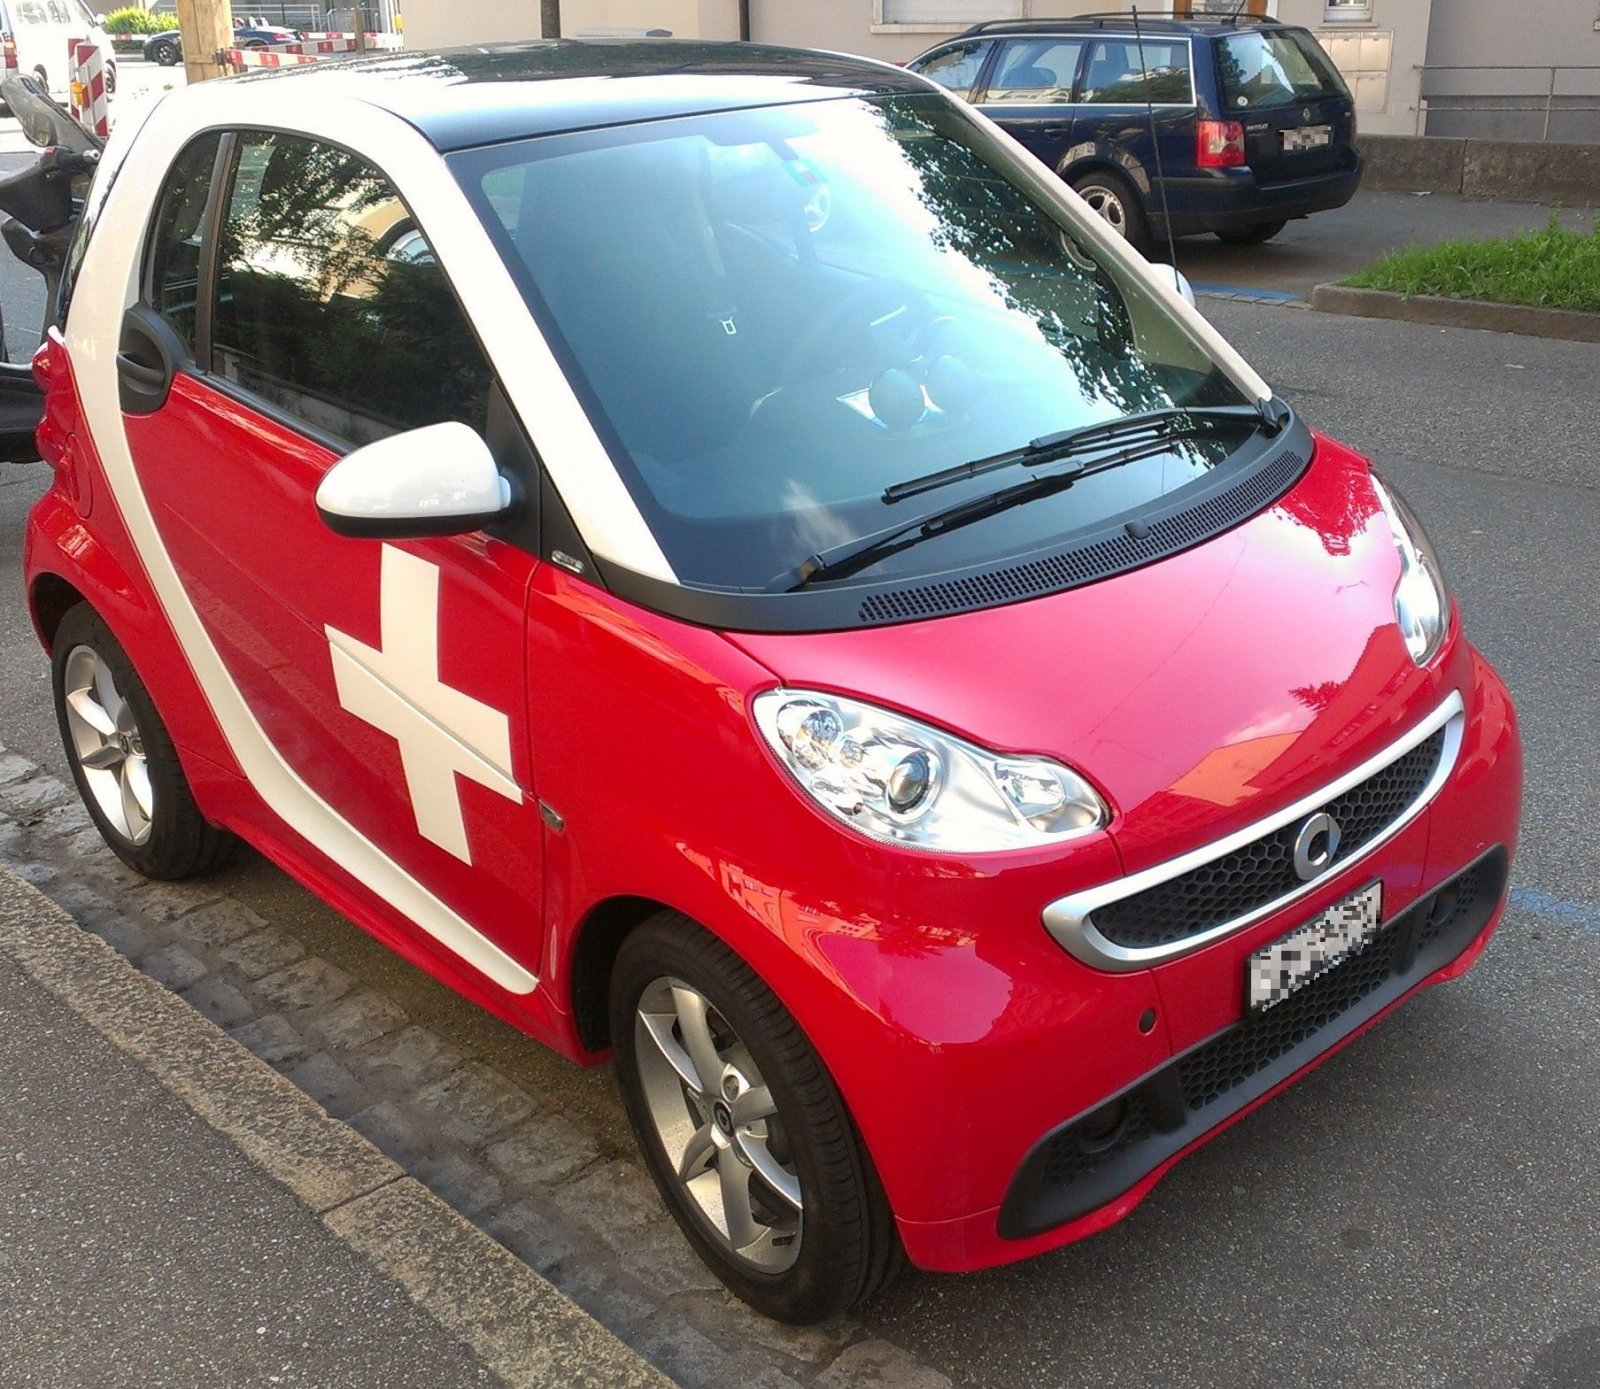 Smart Car with Swiss Cross